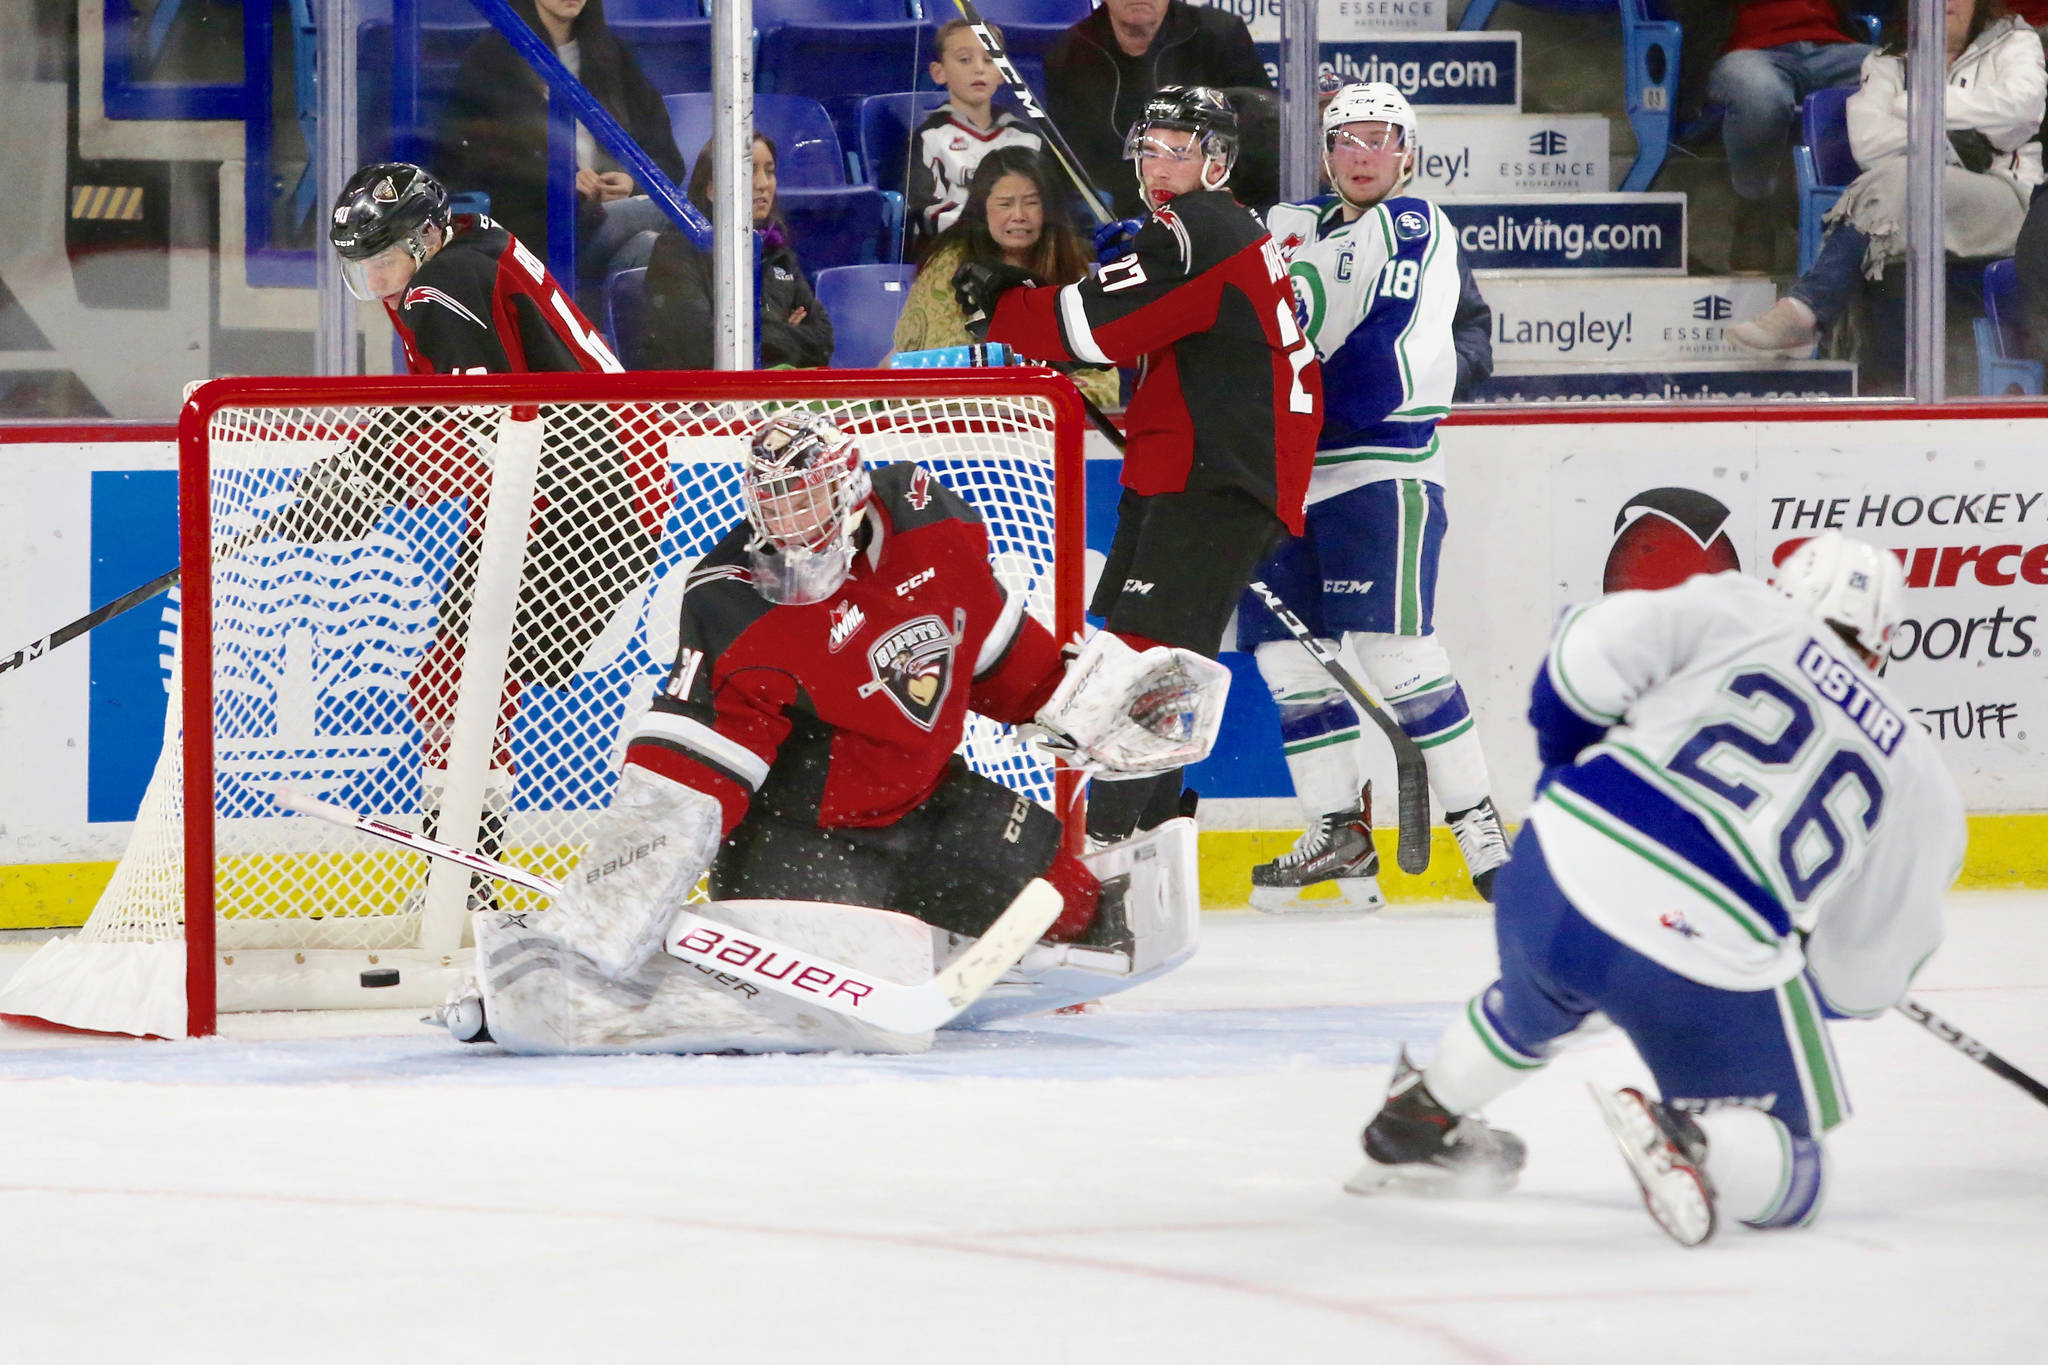 VIDEO: Vancouver Giants down Swift Current